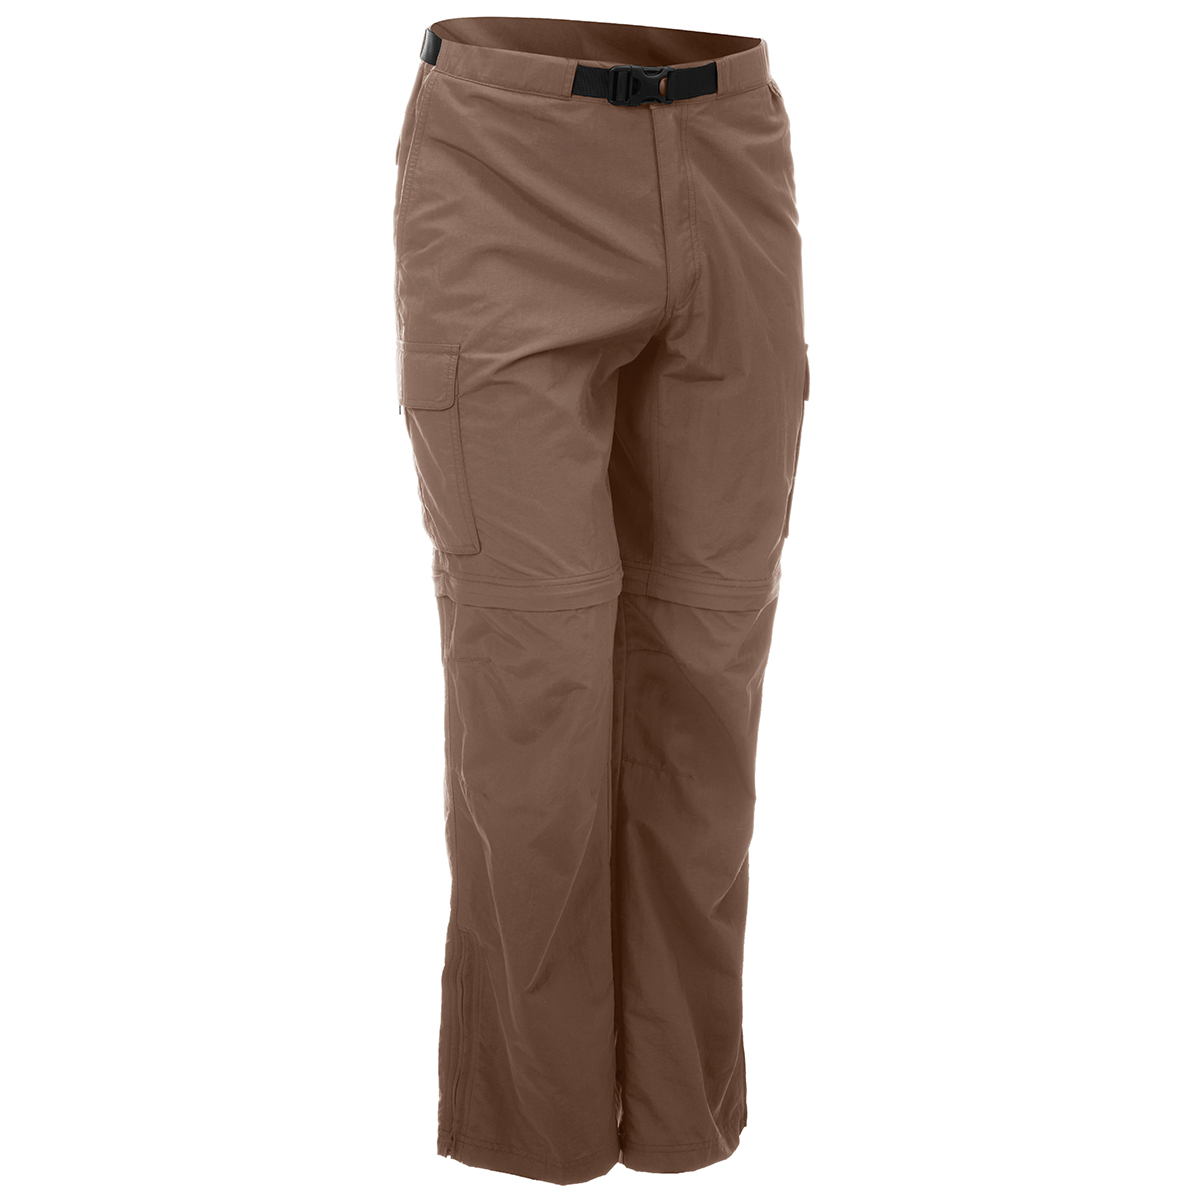 Ems Men's Camp Cargo Zip-Off Pants - White, 31/32